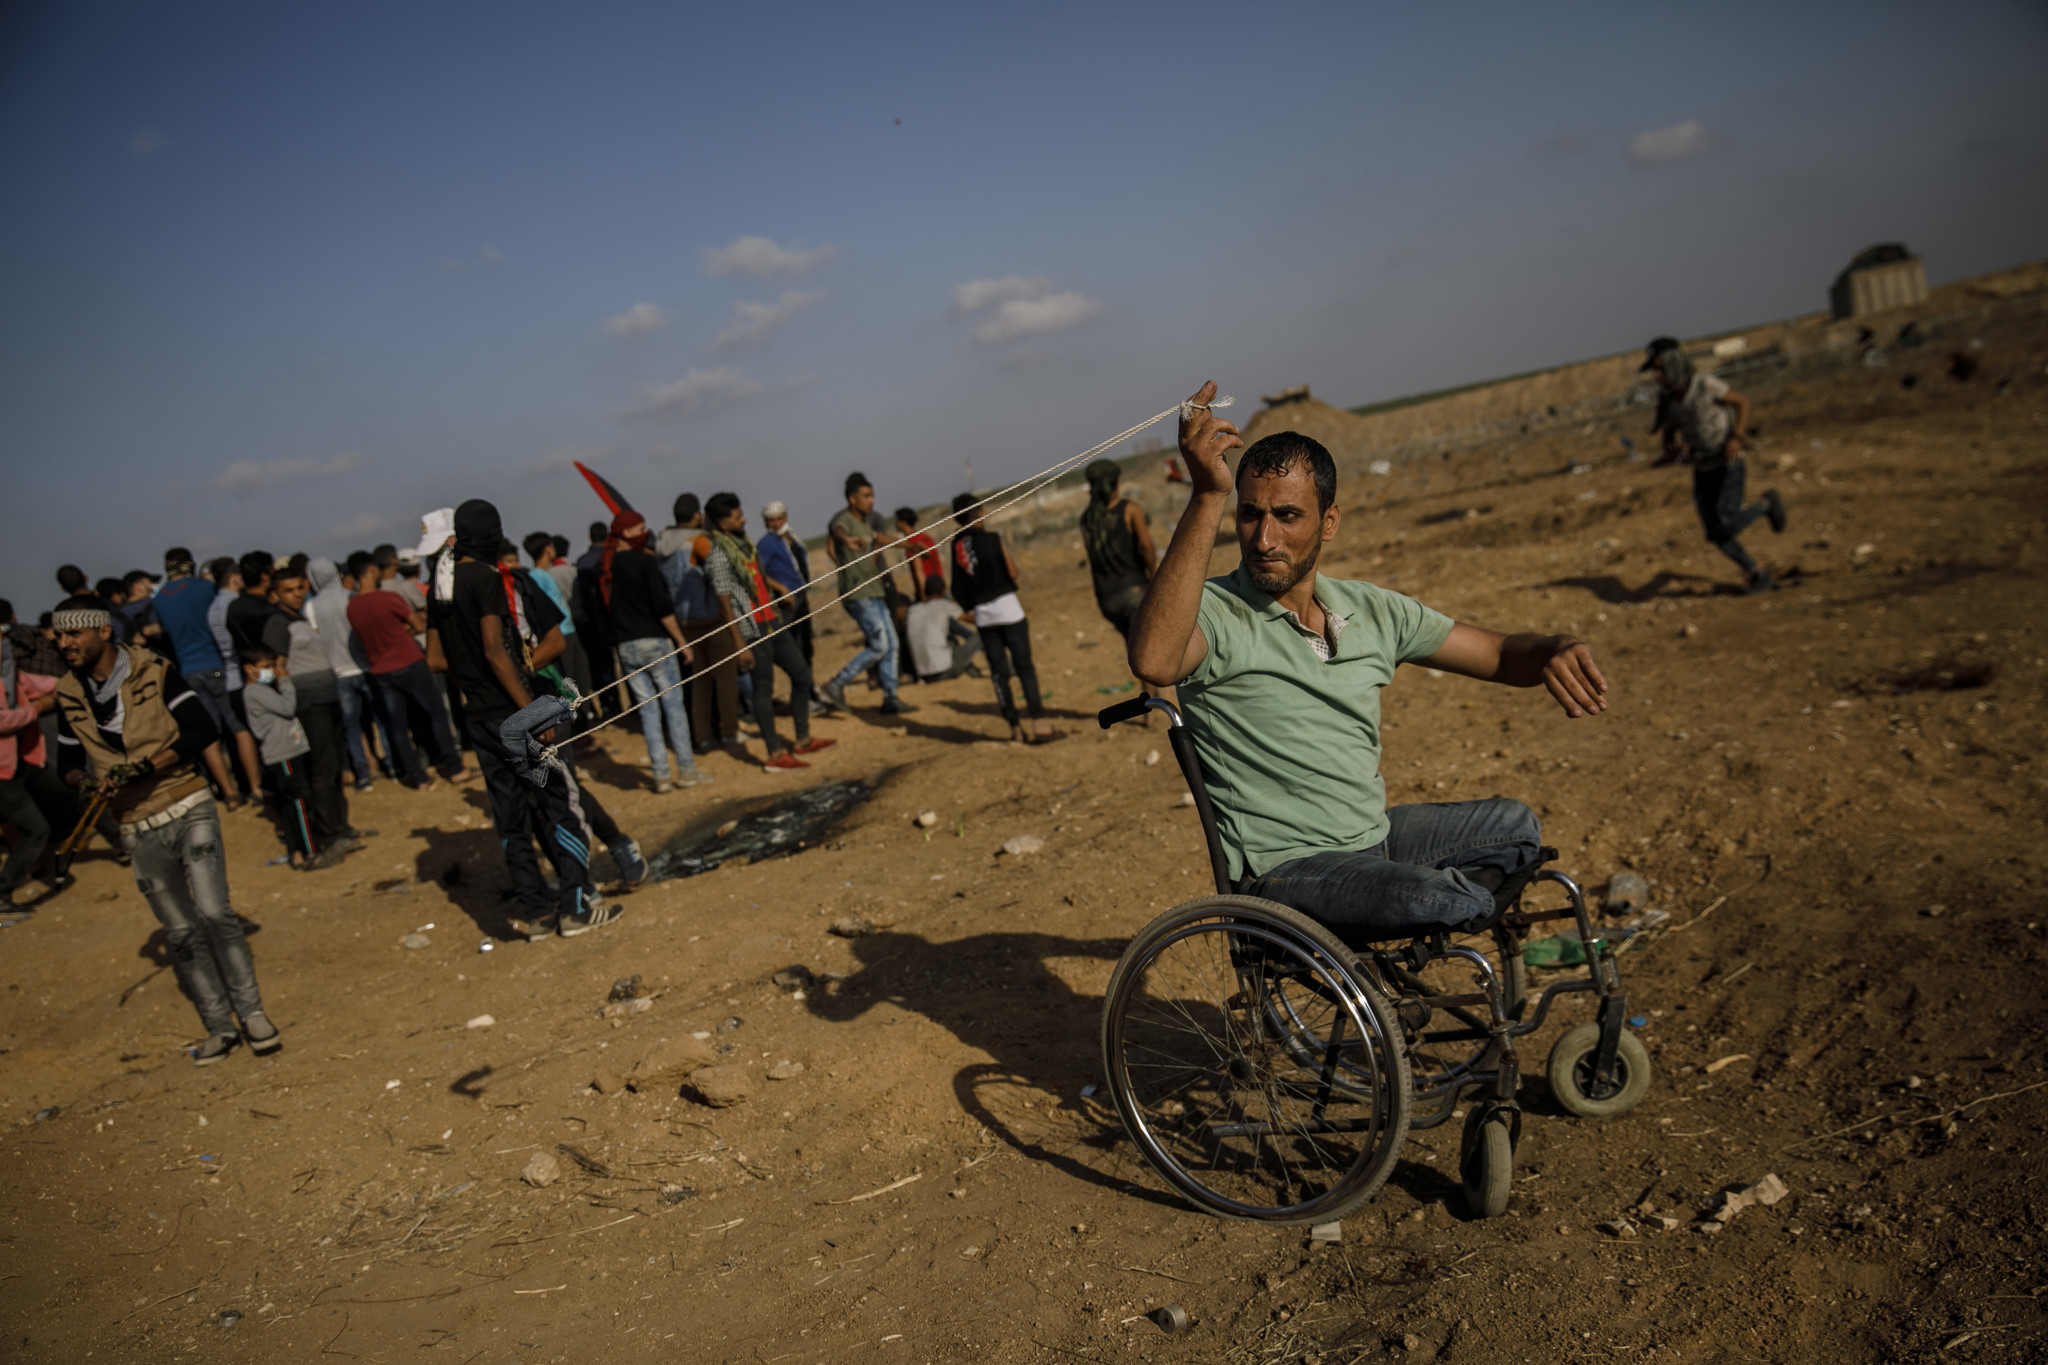 GAZA CITY, GAZA STRIP — FRIDAY, MAY 11, 2018: Sabir Al-Ashqar, who lost his legs in the 2008-2009 G